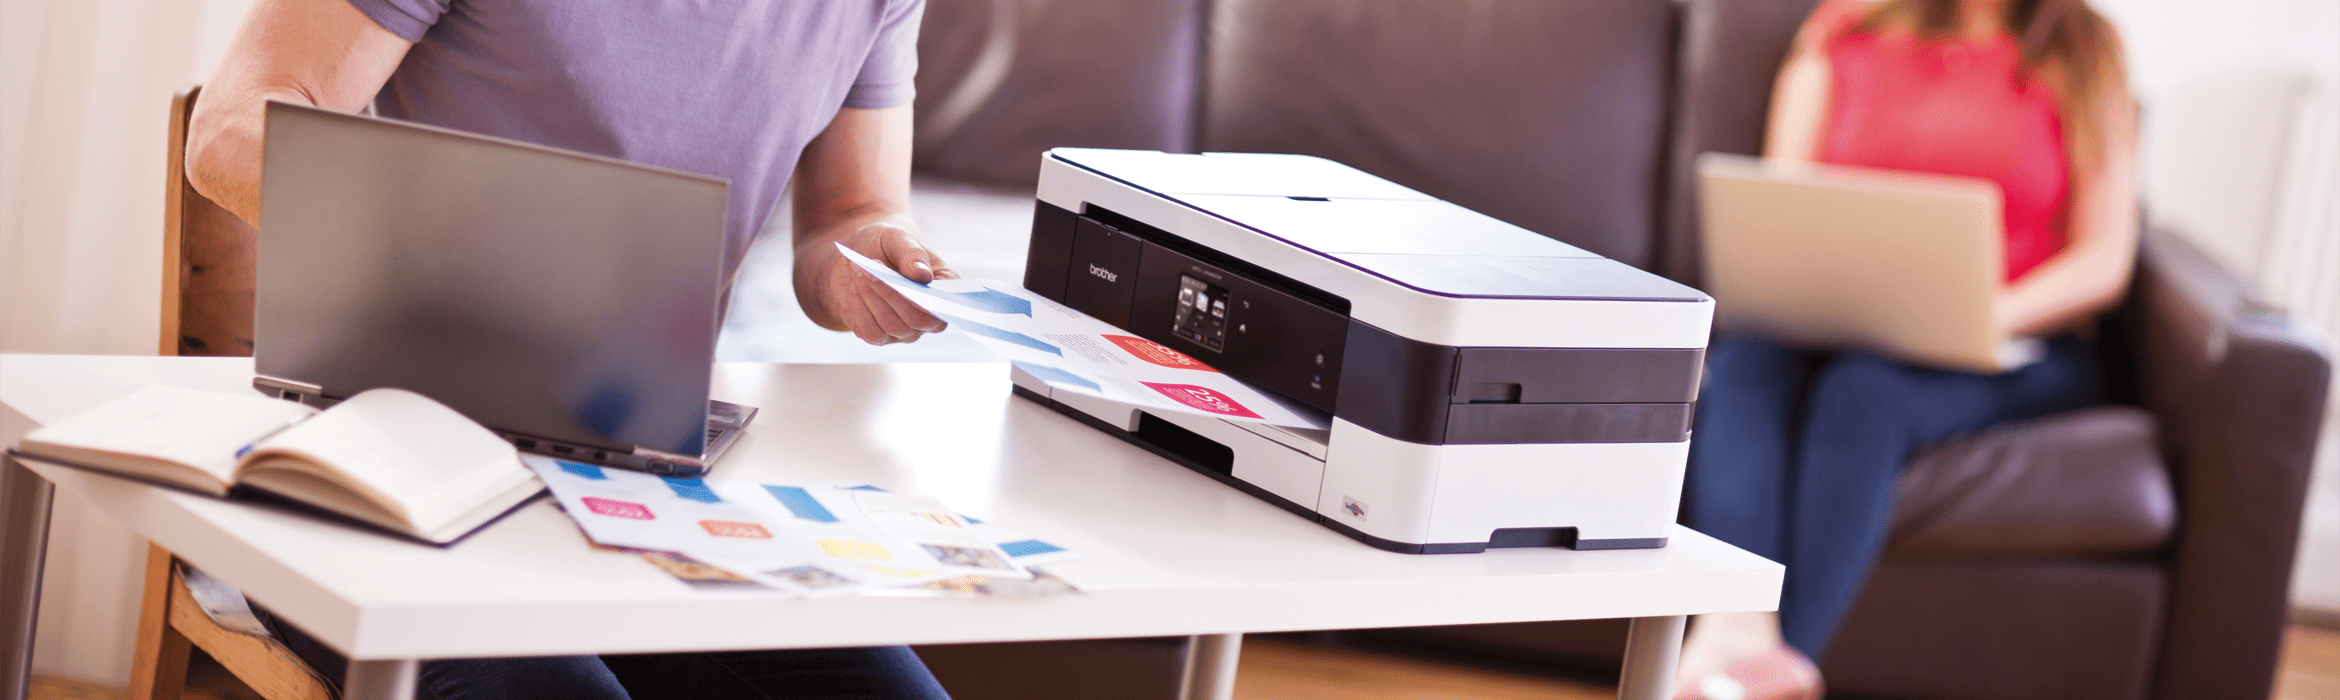 stampa con brother multifunzione MFC-J4420DW